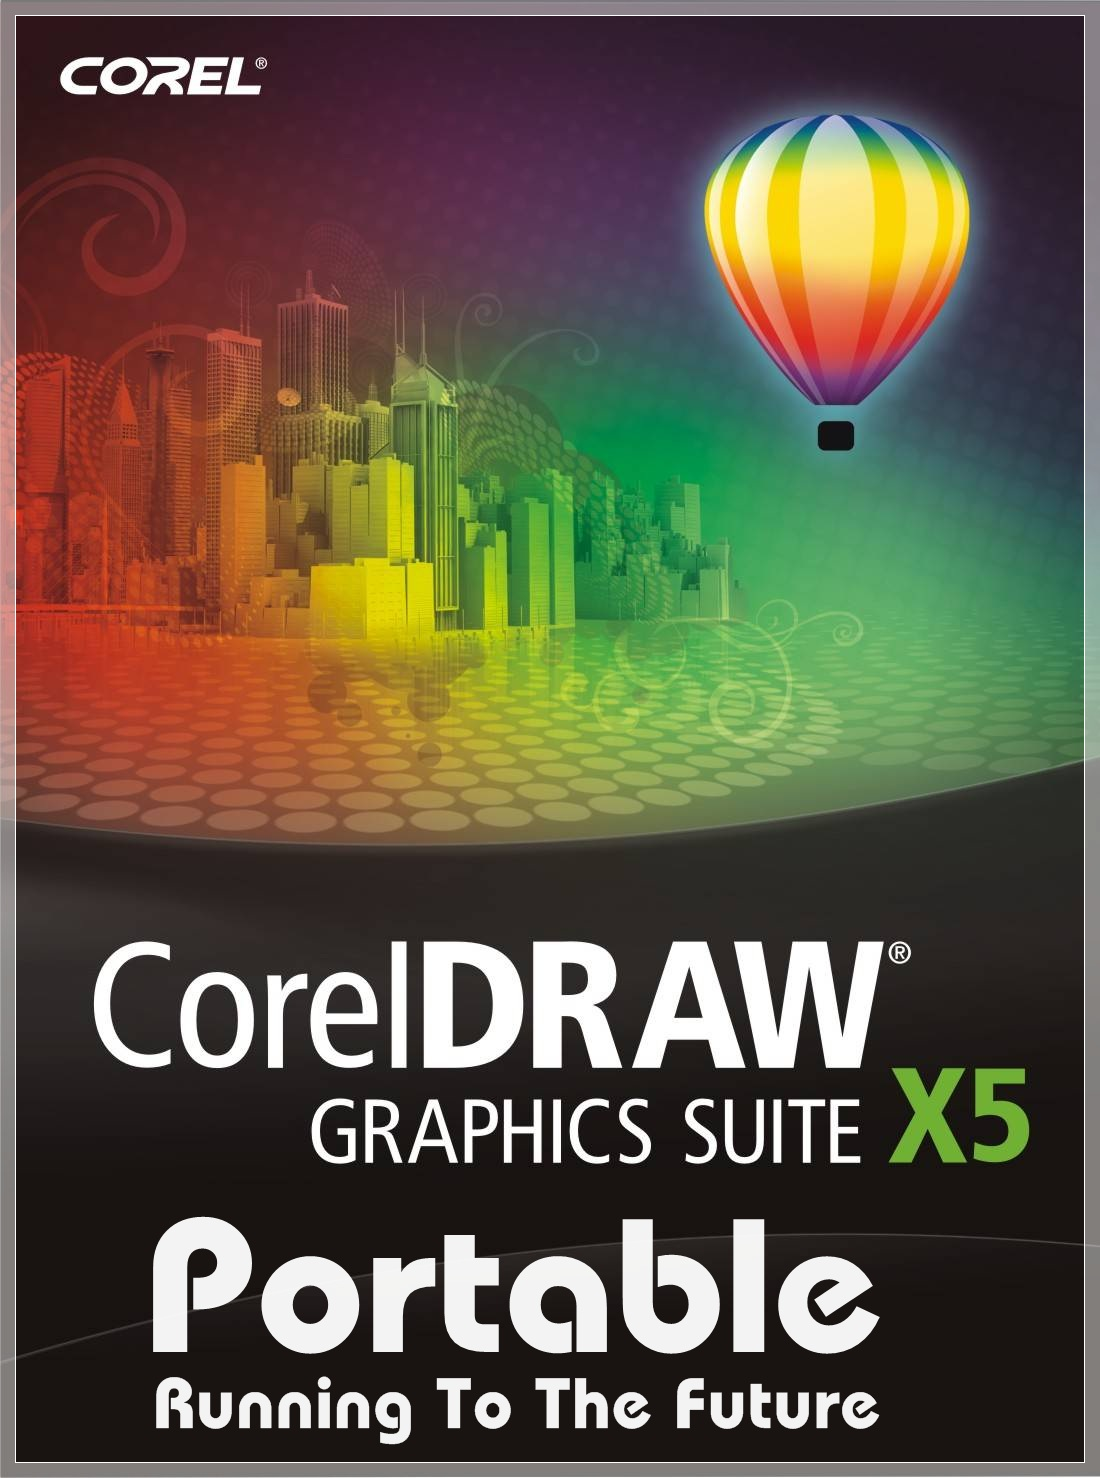 Coreldraw version 12 - Warning This Is A Portable Version Of The Sofware